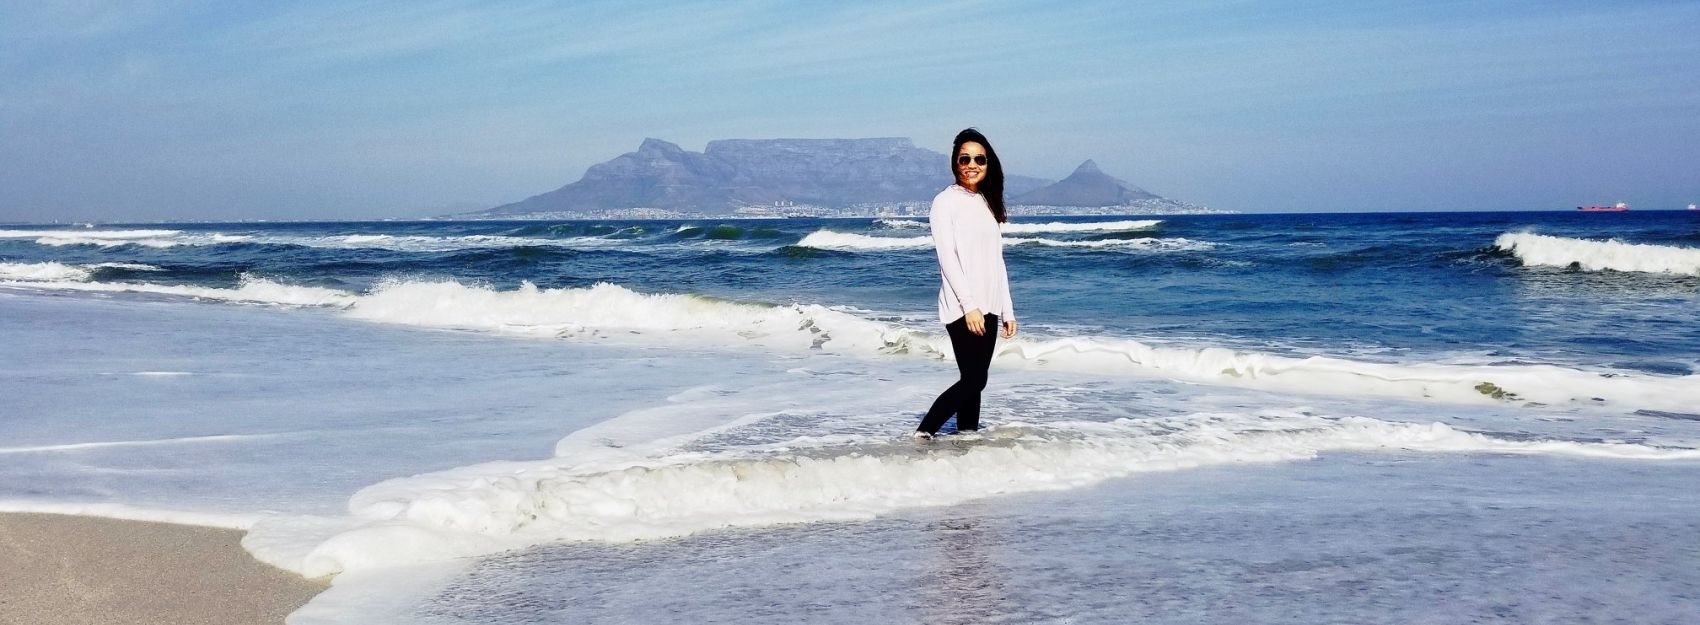 A student stands in the waves of a beach in Cape Town